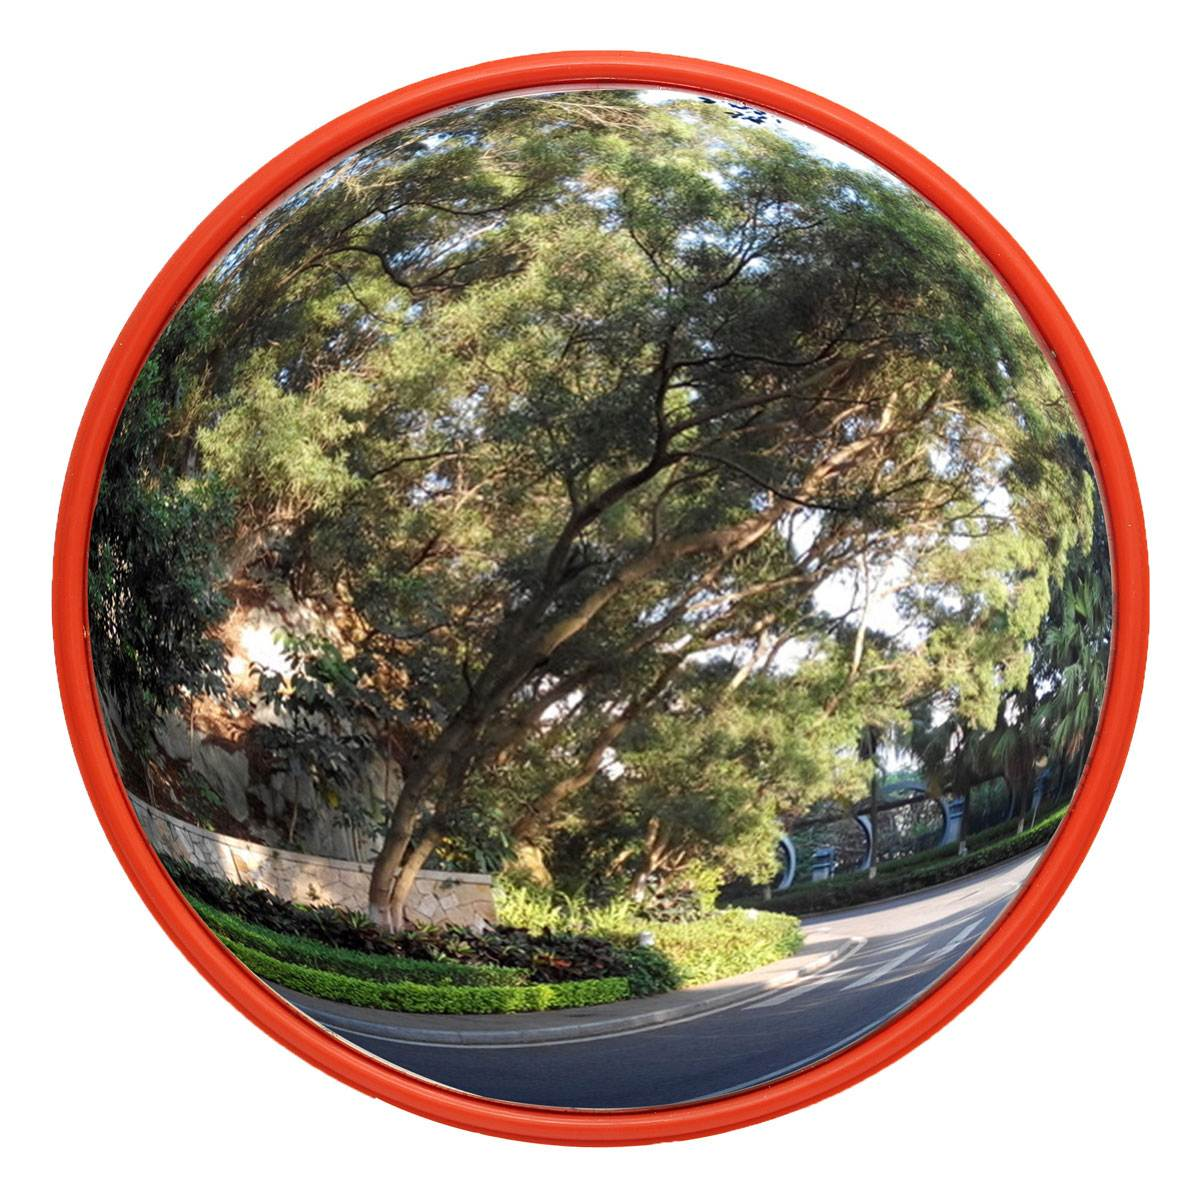 NEW 60 cm Wide Angle Security Curved Convex Road Mirror Traffic Driveway Roadway Safety Traffic SignalNEW 60 cm Wide Angle Security Curved Convex Road Mirror Traffic Driveway Roadway Safety Traffic Signal